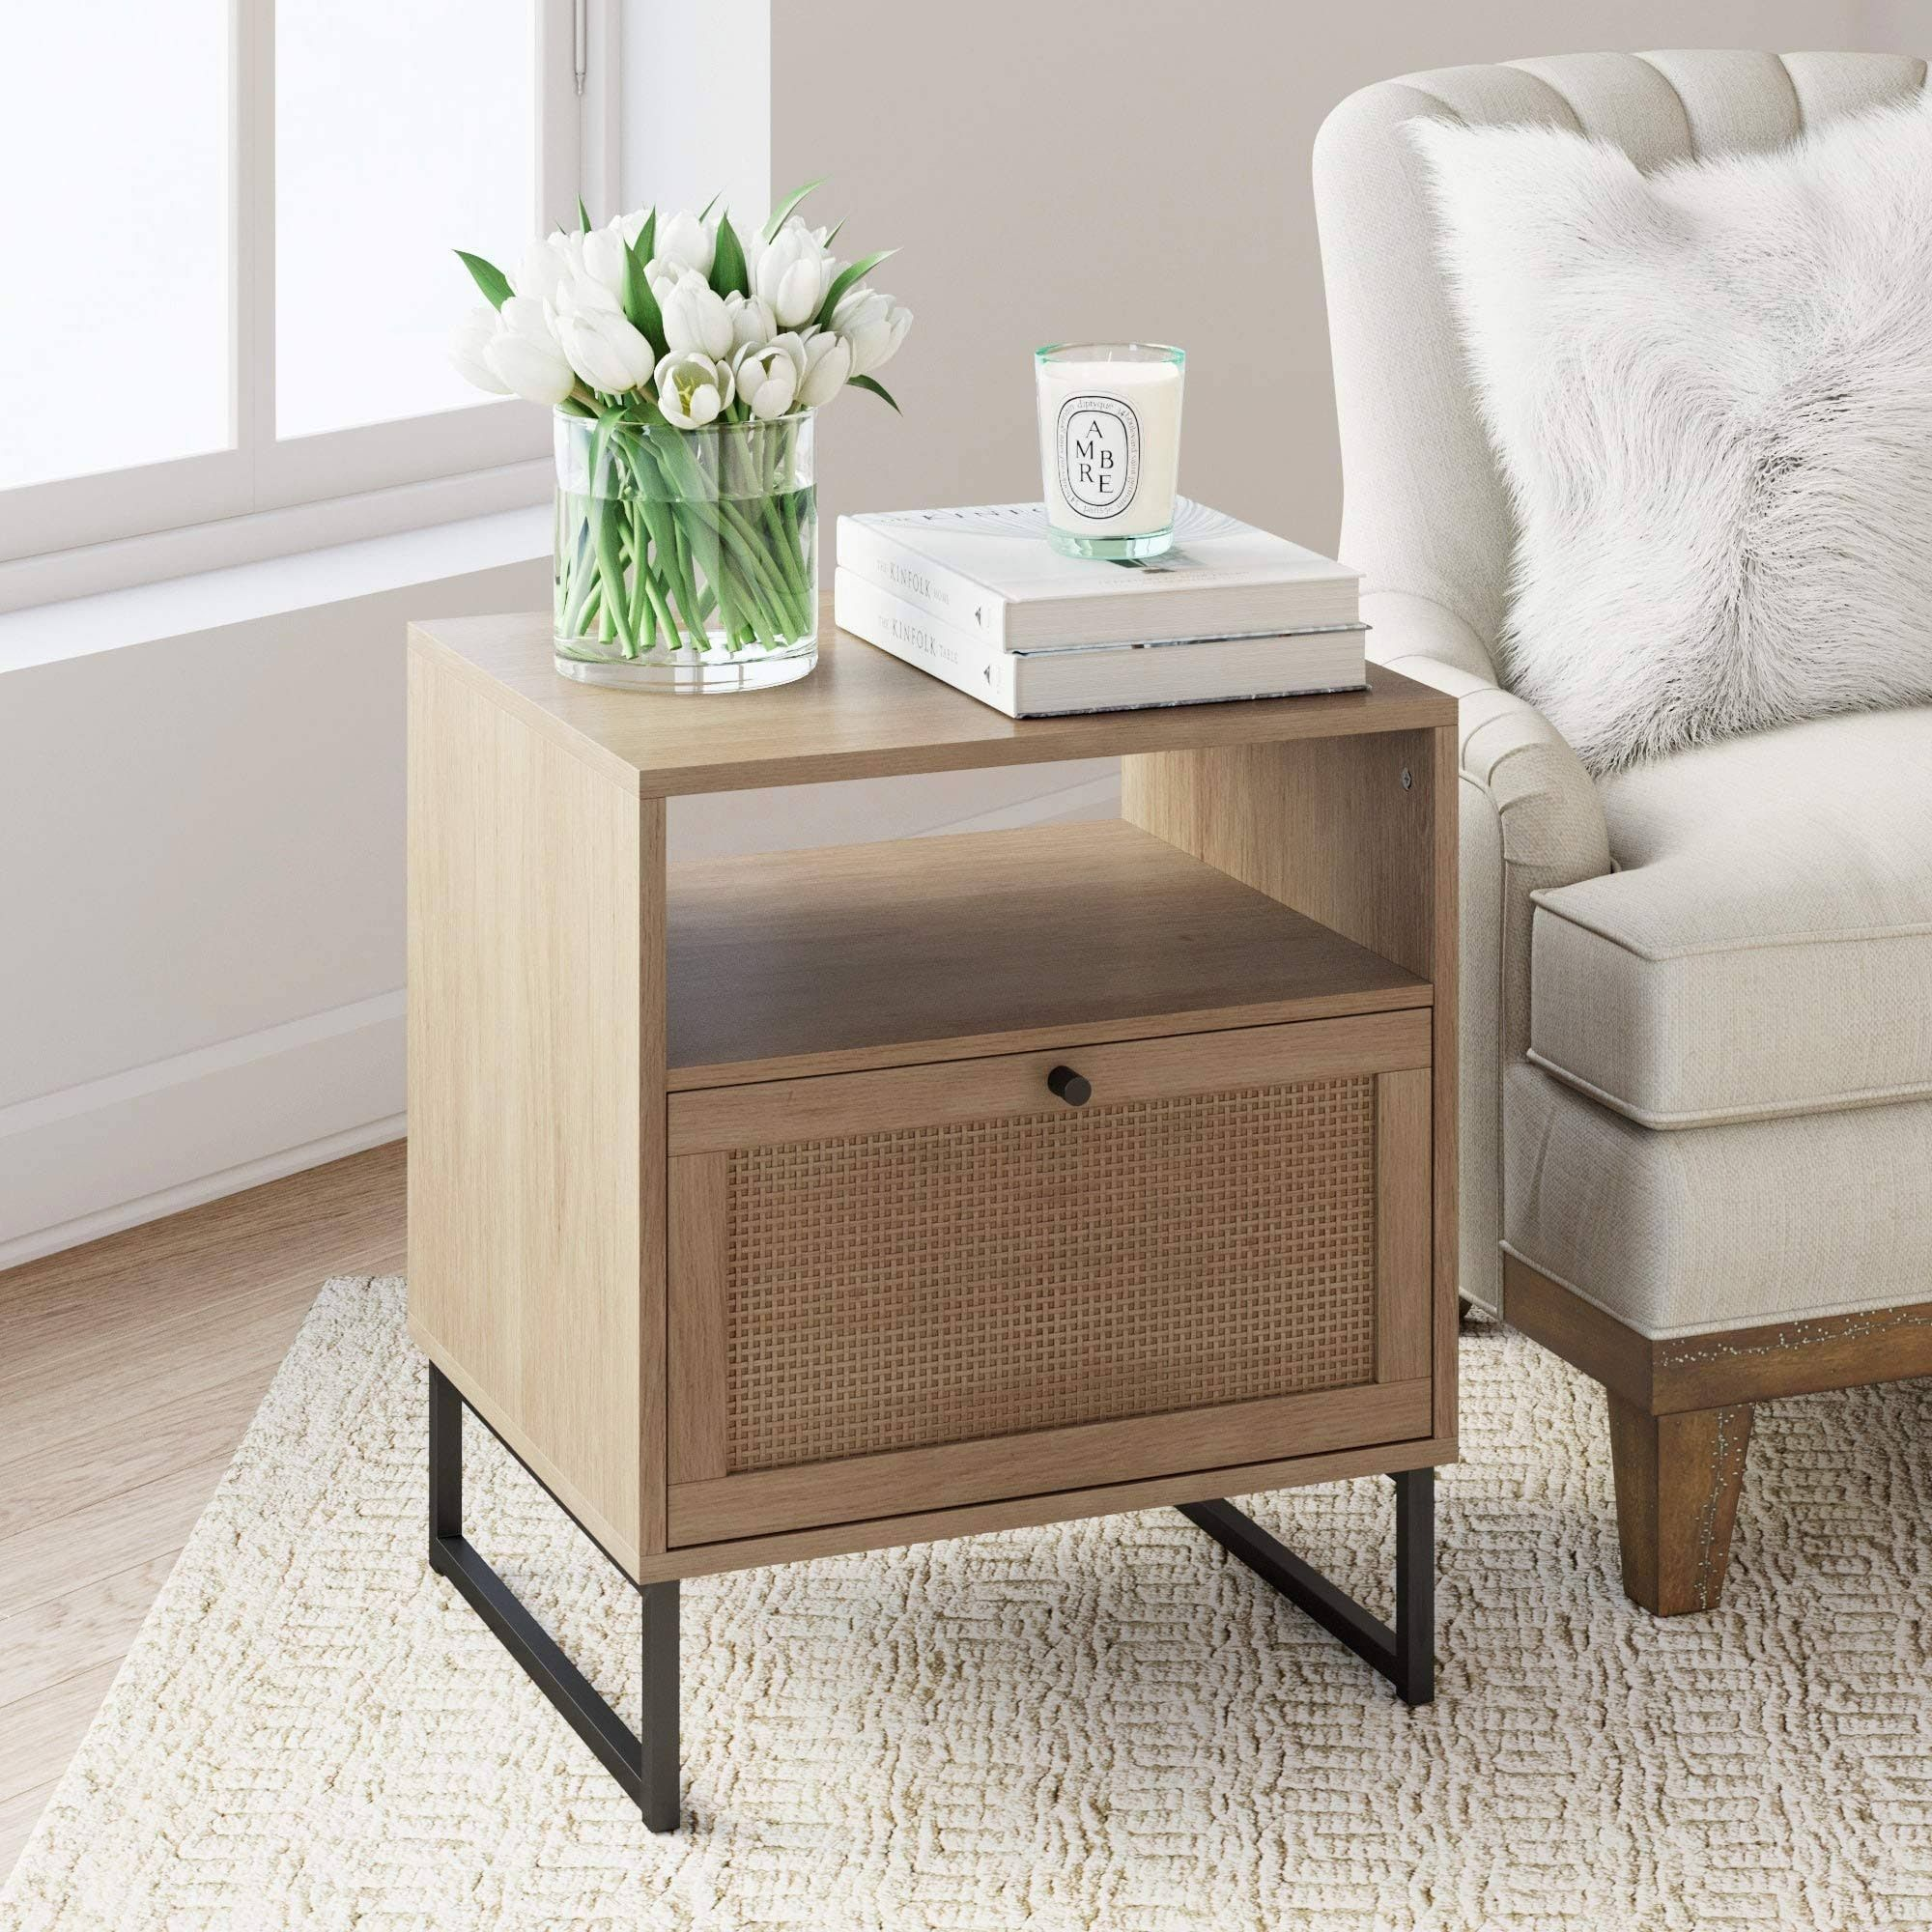 Vanitt Site Nathan James Mina Side End Table Wood Finish Matte Accents With Storage For Livi In 2020 Bedroom Night Stands Living Room End Tables Living Room Storage #side #table #with #storage #for #living #room